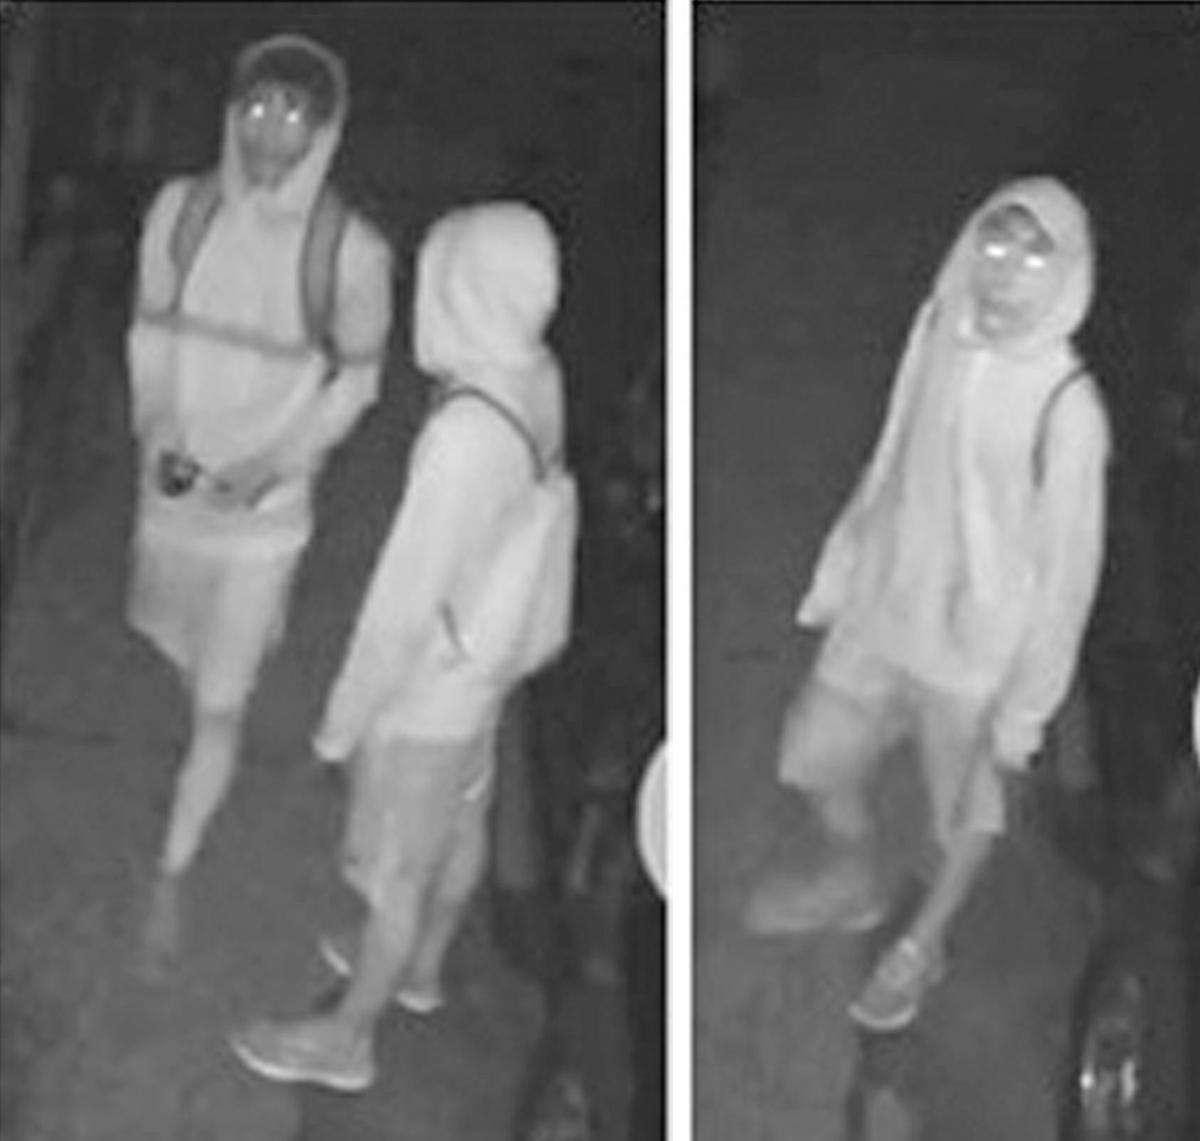 Faribault police need help to ID burglary suspects